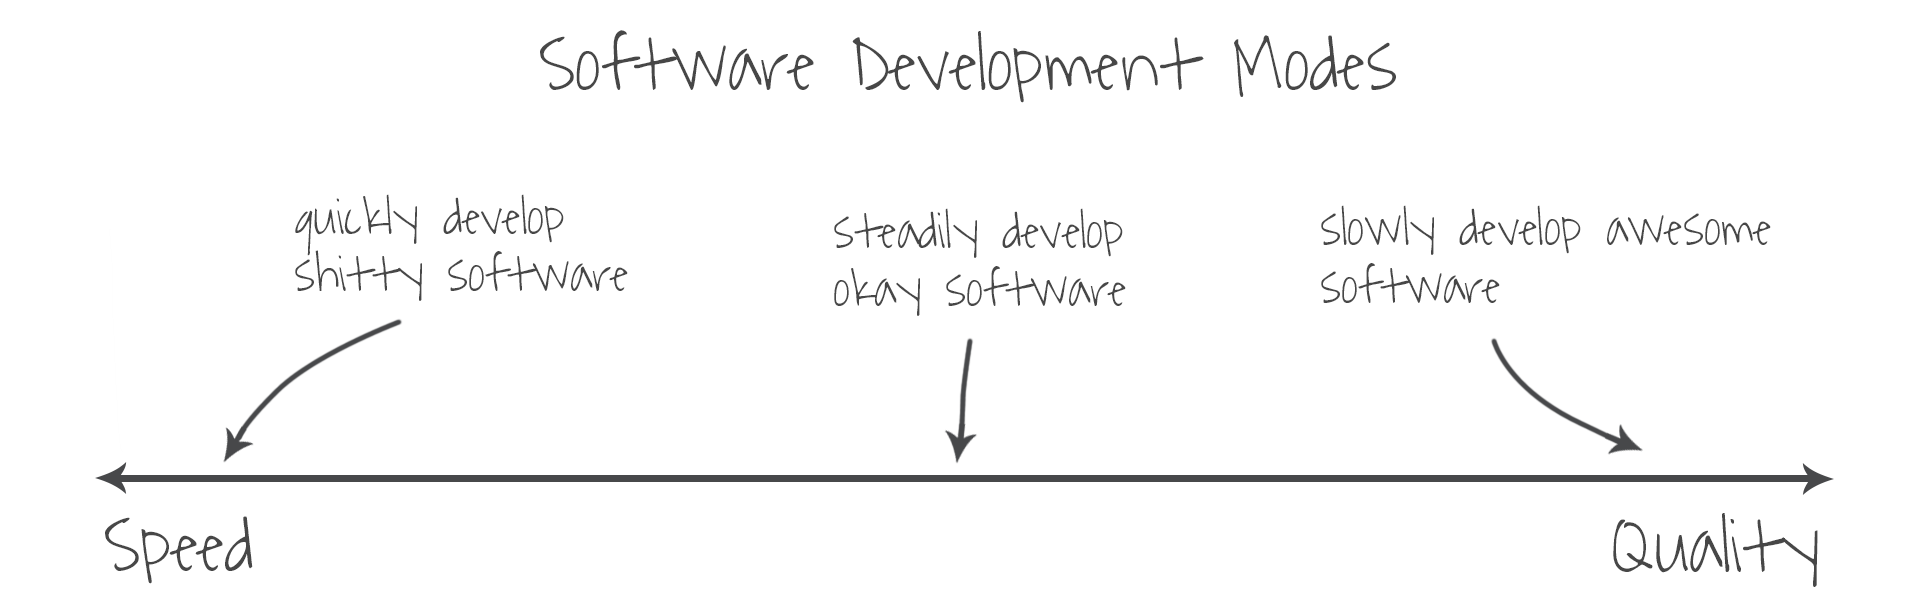 software-development-modes